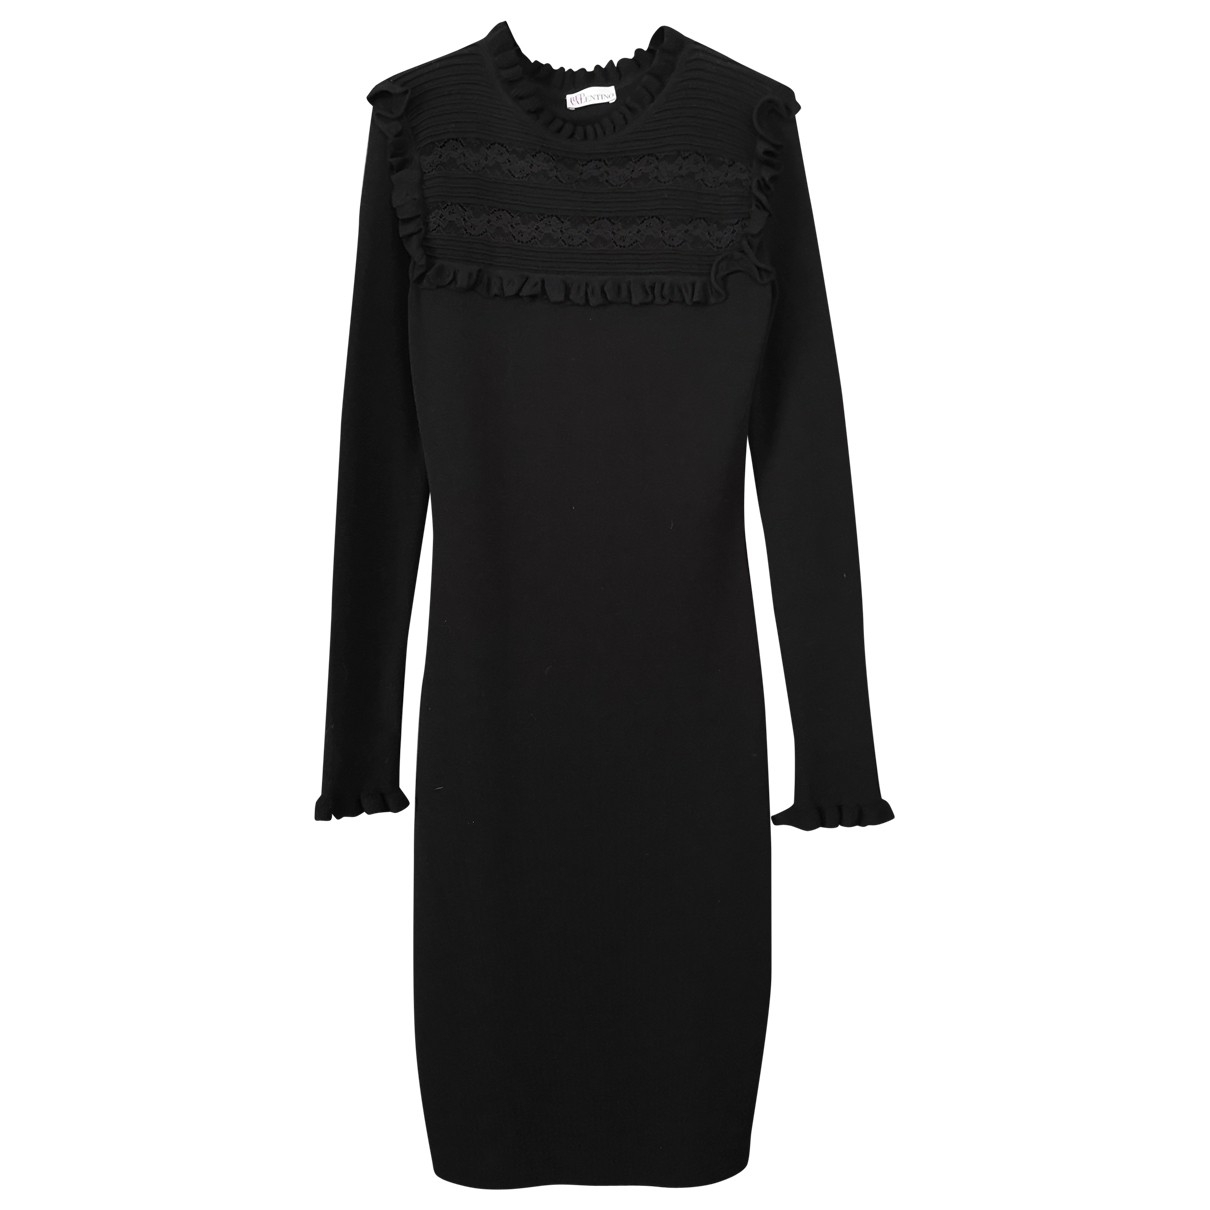 Red Valentino Garavani \N Black Wool dress for Women L International